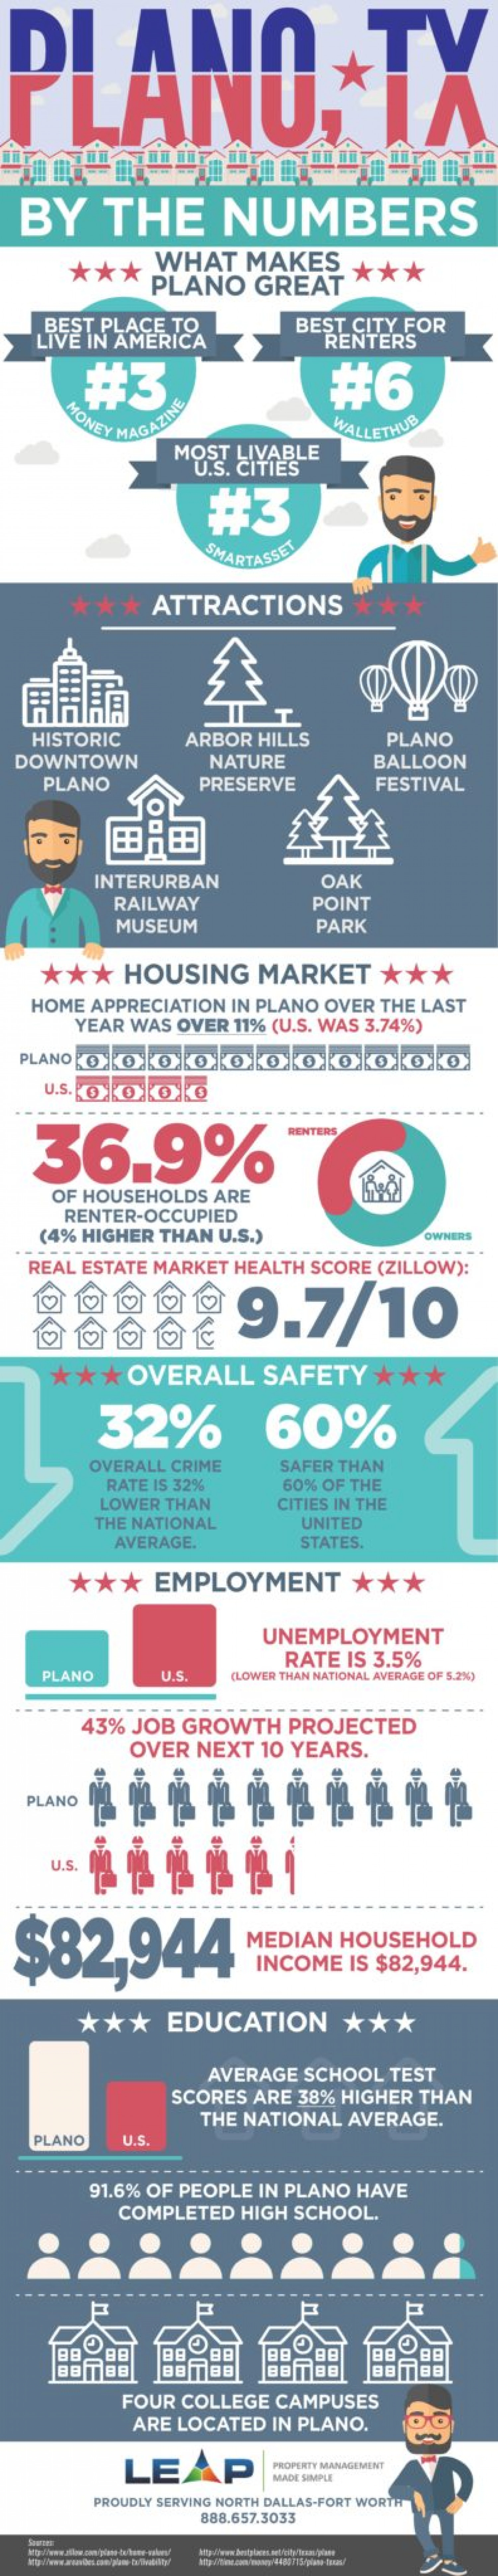 PLANO, TX BY THE NUMBERS [INFOGRAPHIC] Infographic